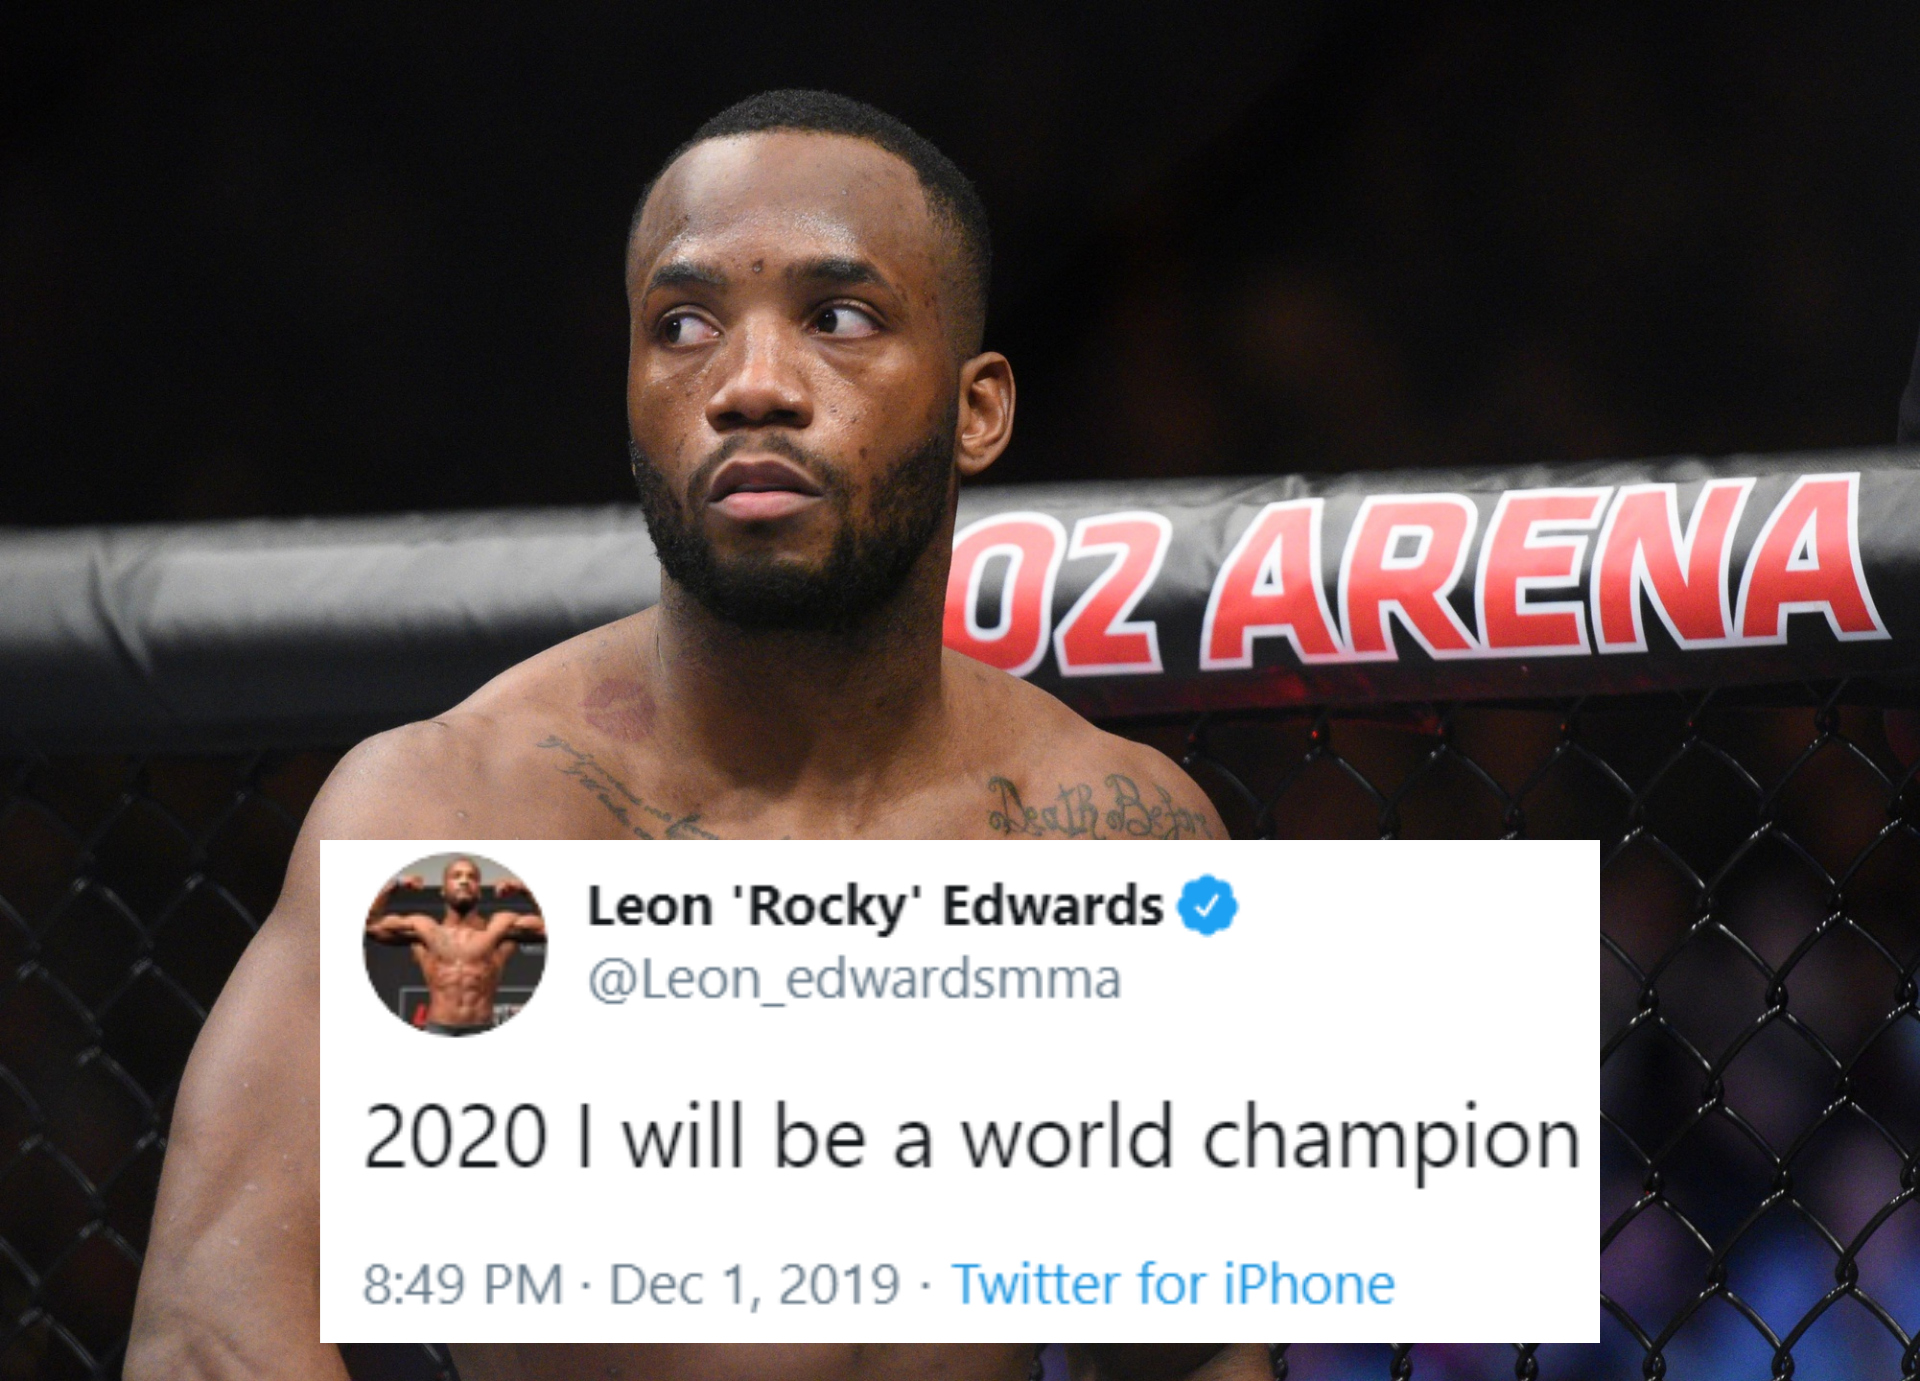 Leon Edwards makes a bold prediction for 2020! - Edwards